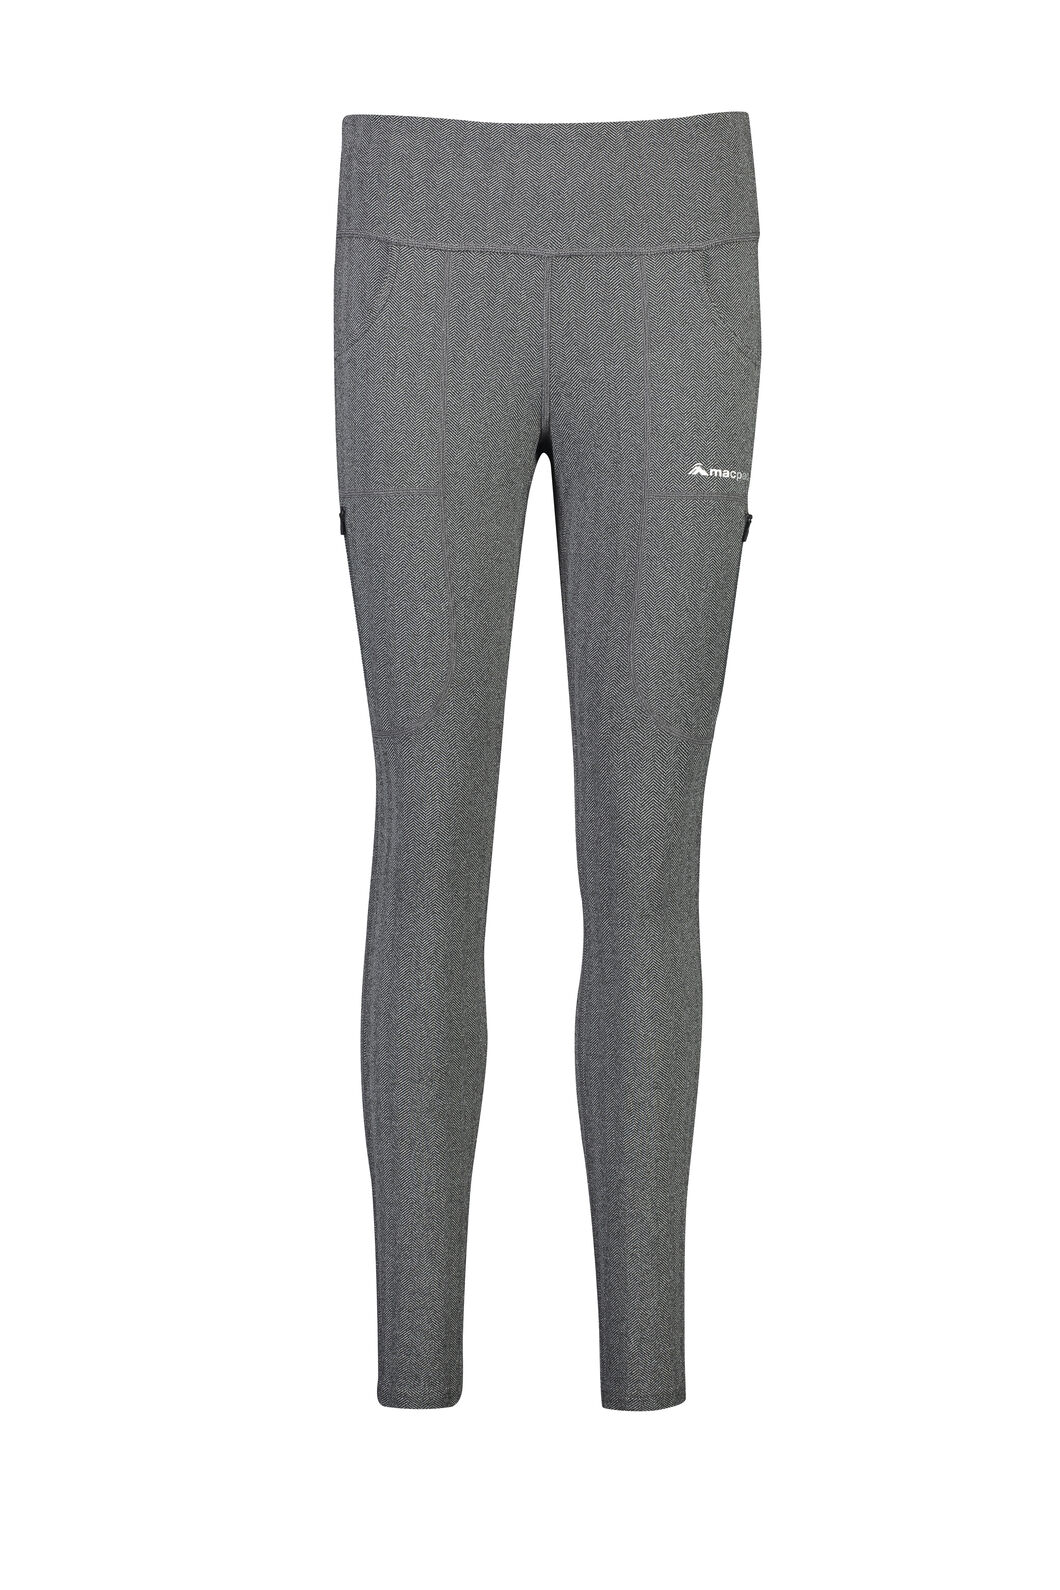 Macpac Wander Tights - Women's, Chariak, hi-res